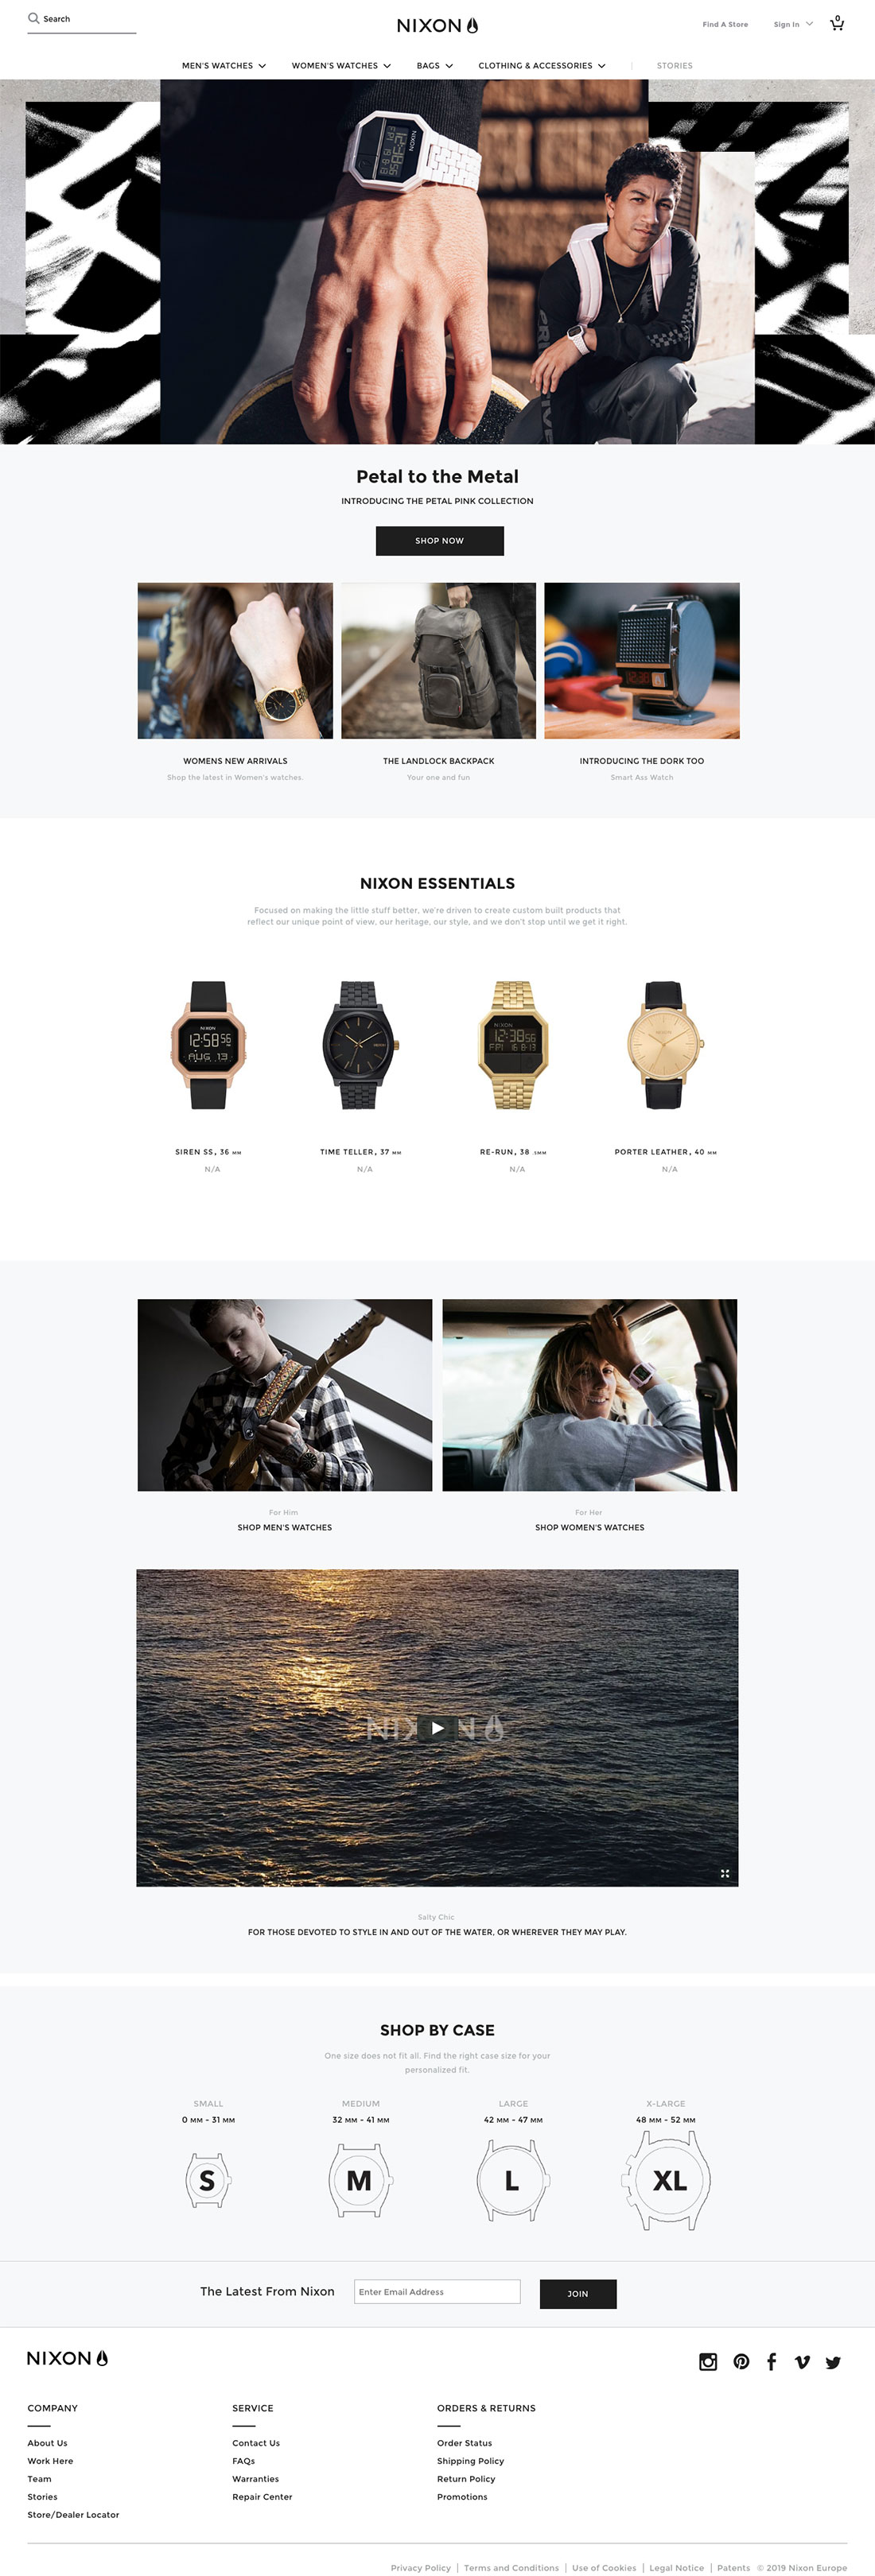 Nixon - website design example